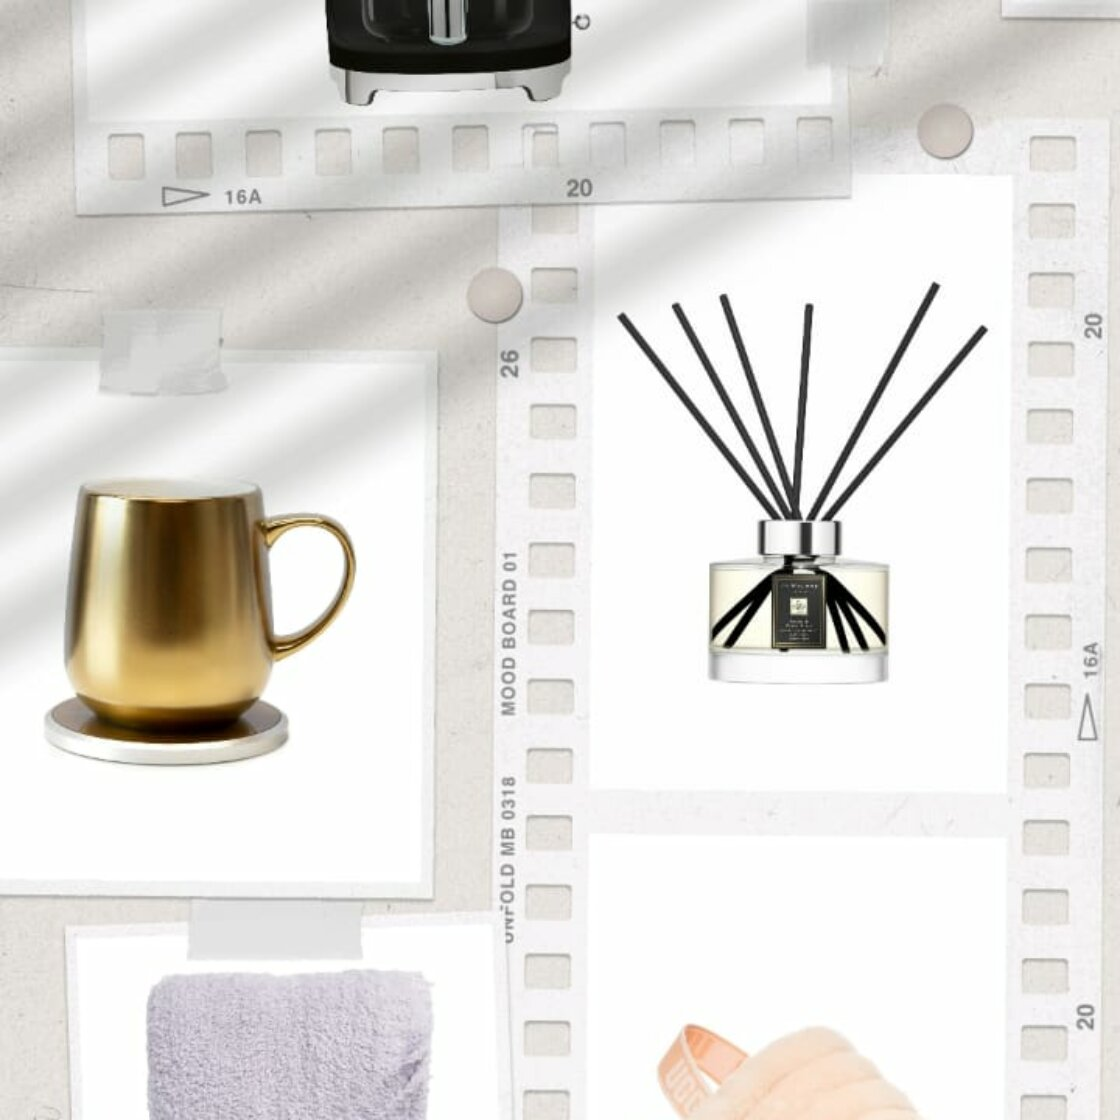 11 Chic Home-Inspired Mother's Day Gifts To Wow Your Mom With